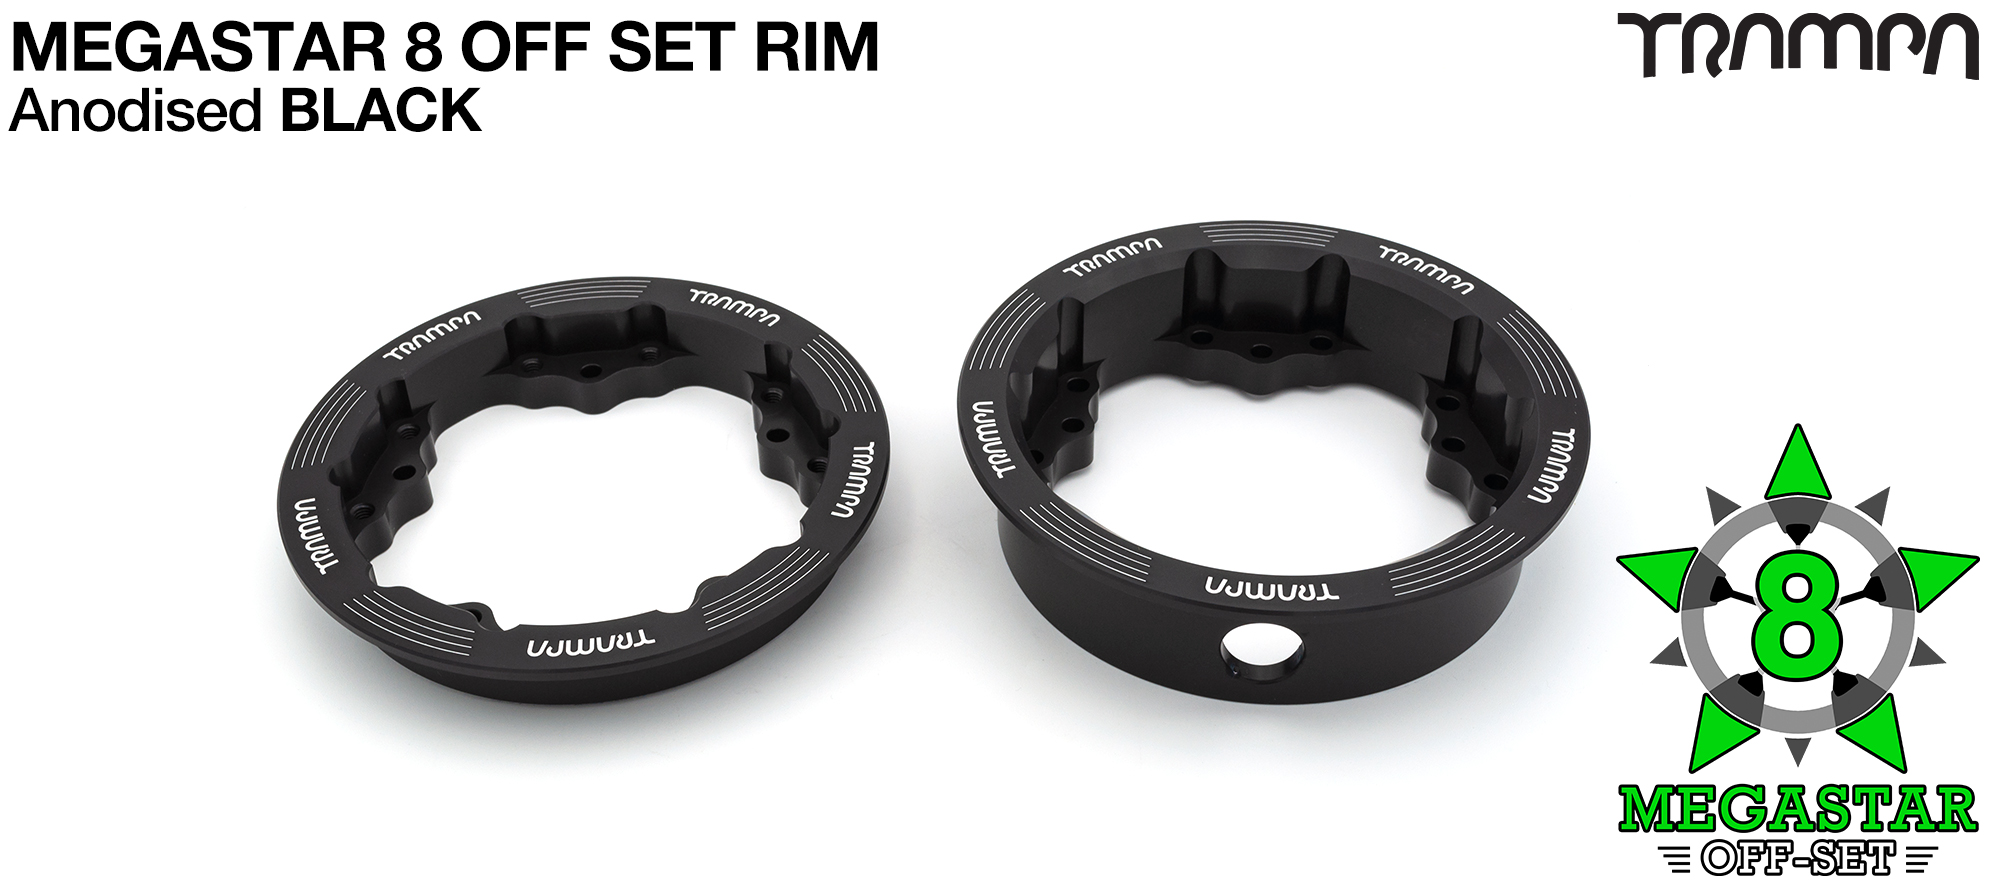 CENTER-SET 8 inch MEGASTAR Rims - BLACK